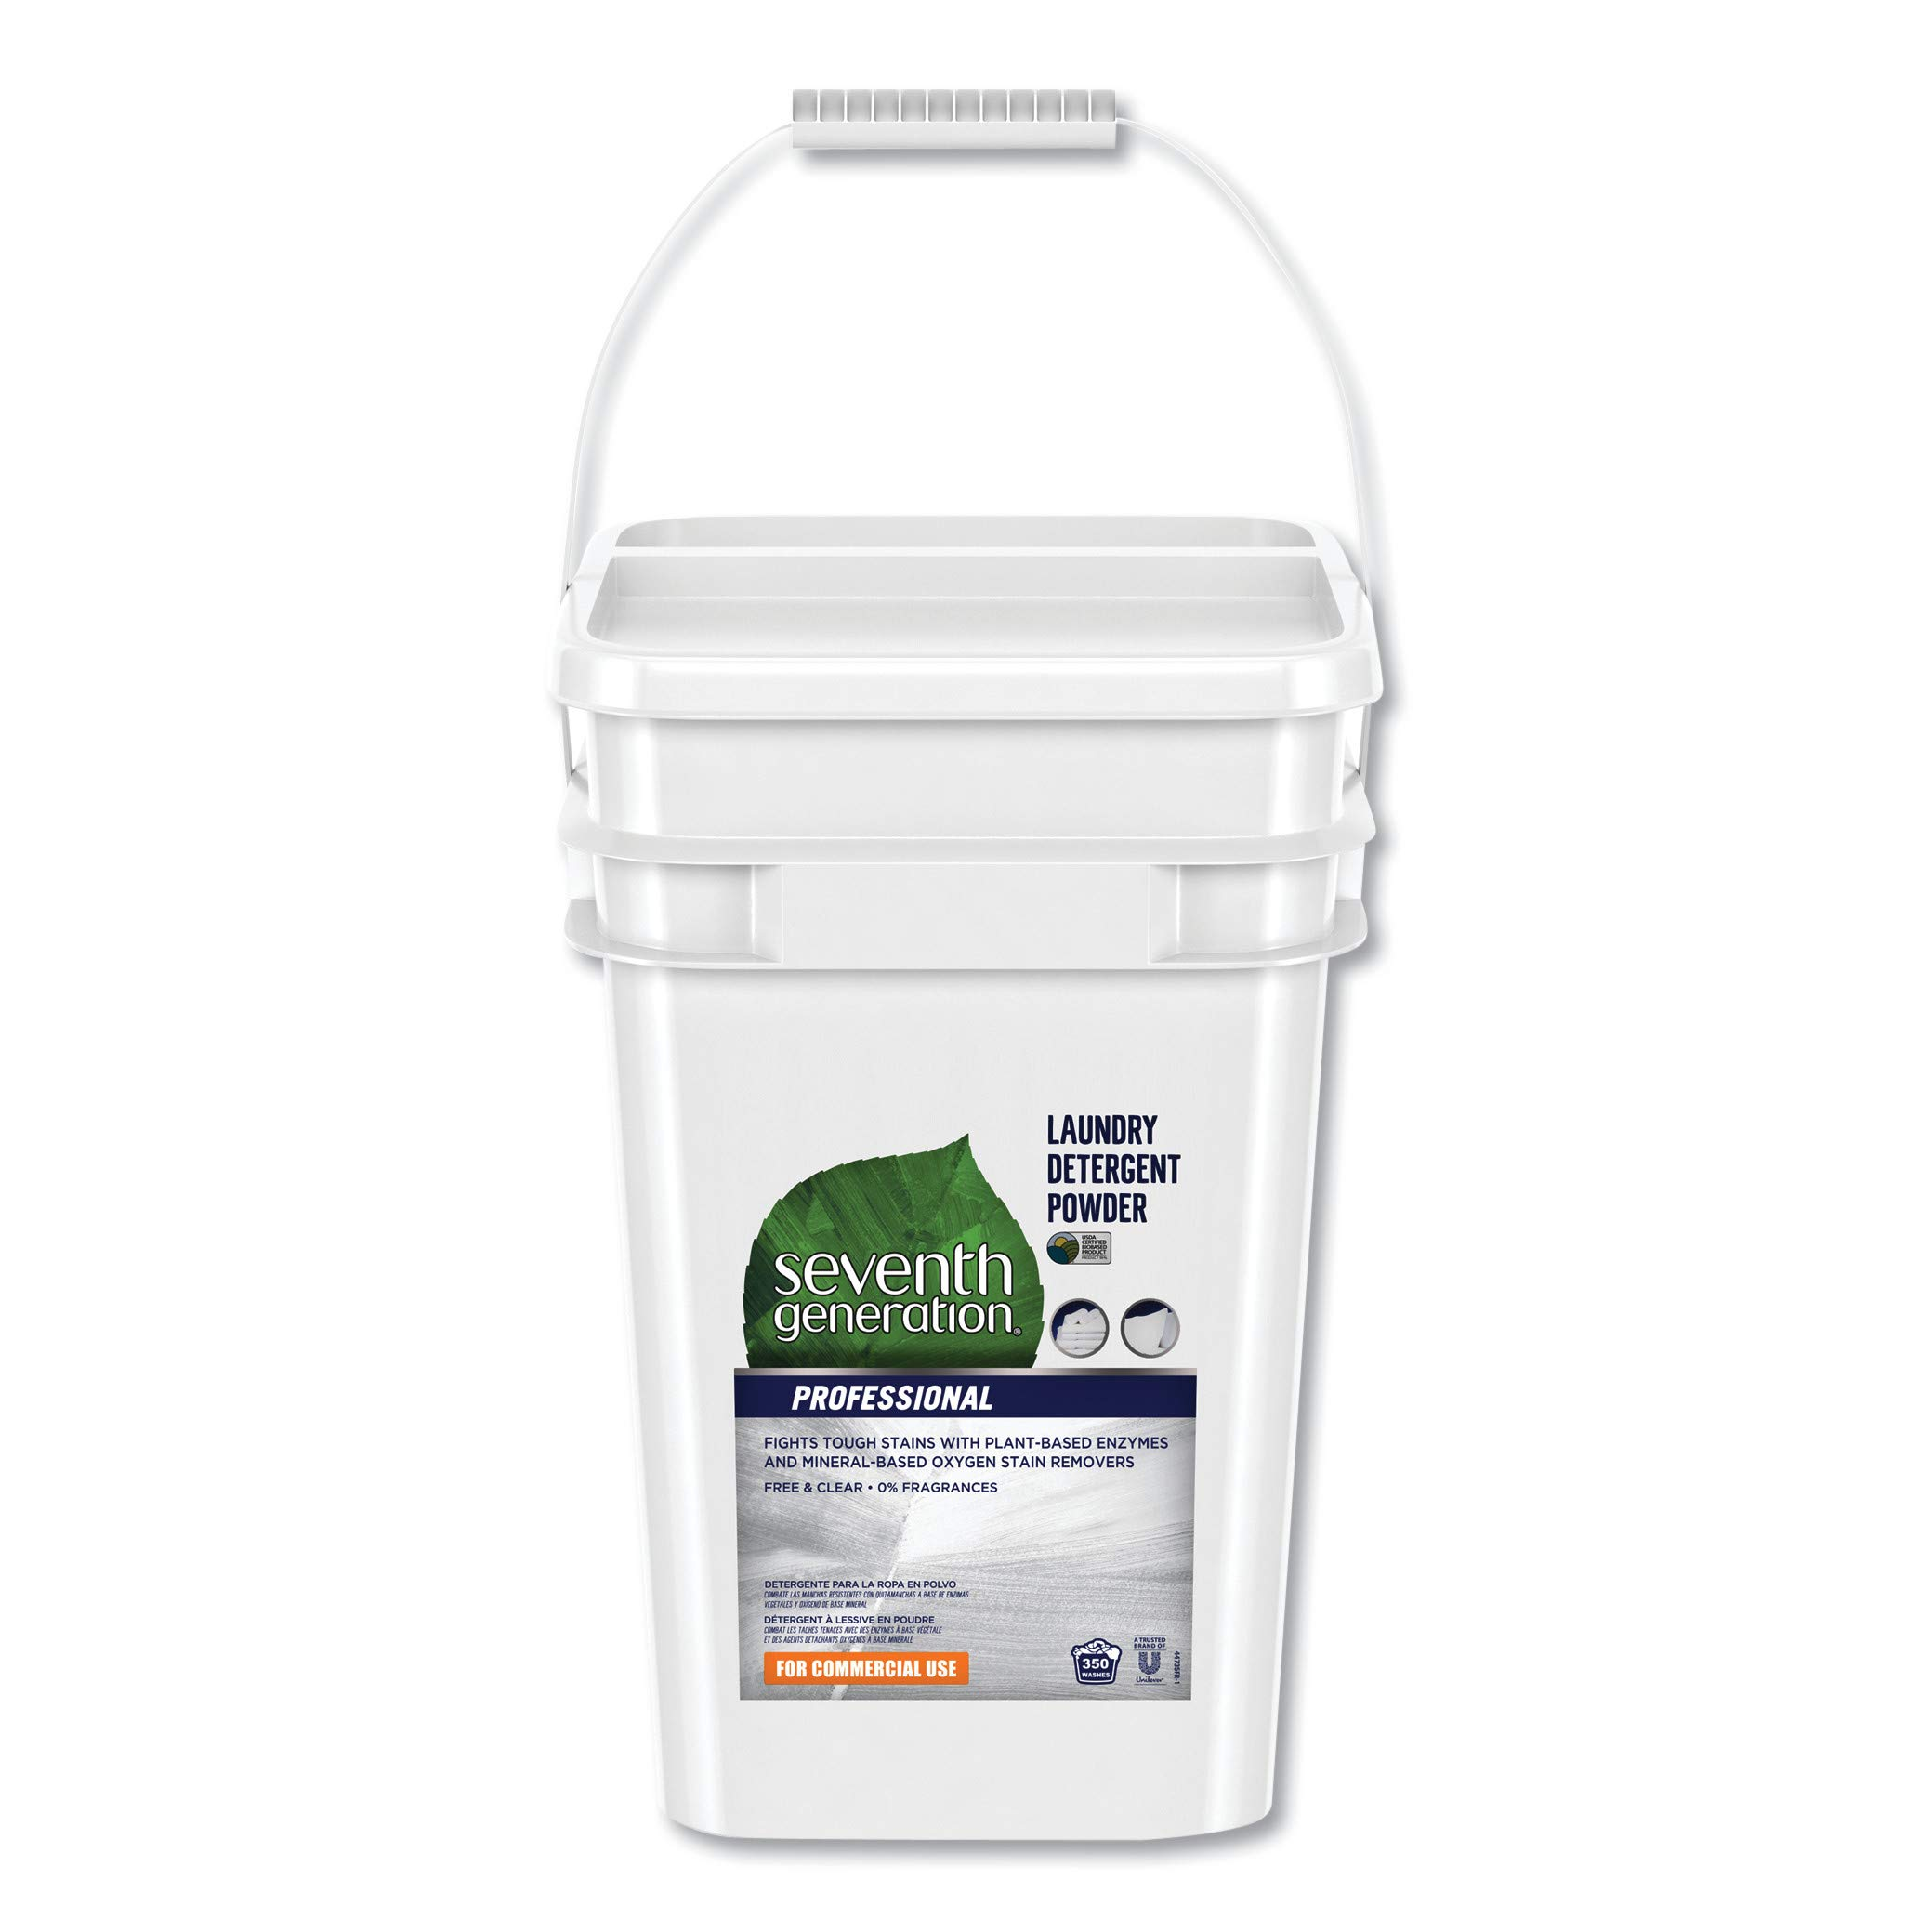 Seventh Generation Professional Free and Clear Powdered Laundry Detergent, 35-Lb Pail by Seventh Generation (Image #1)